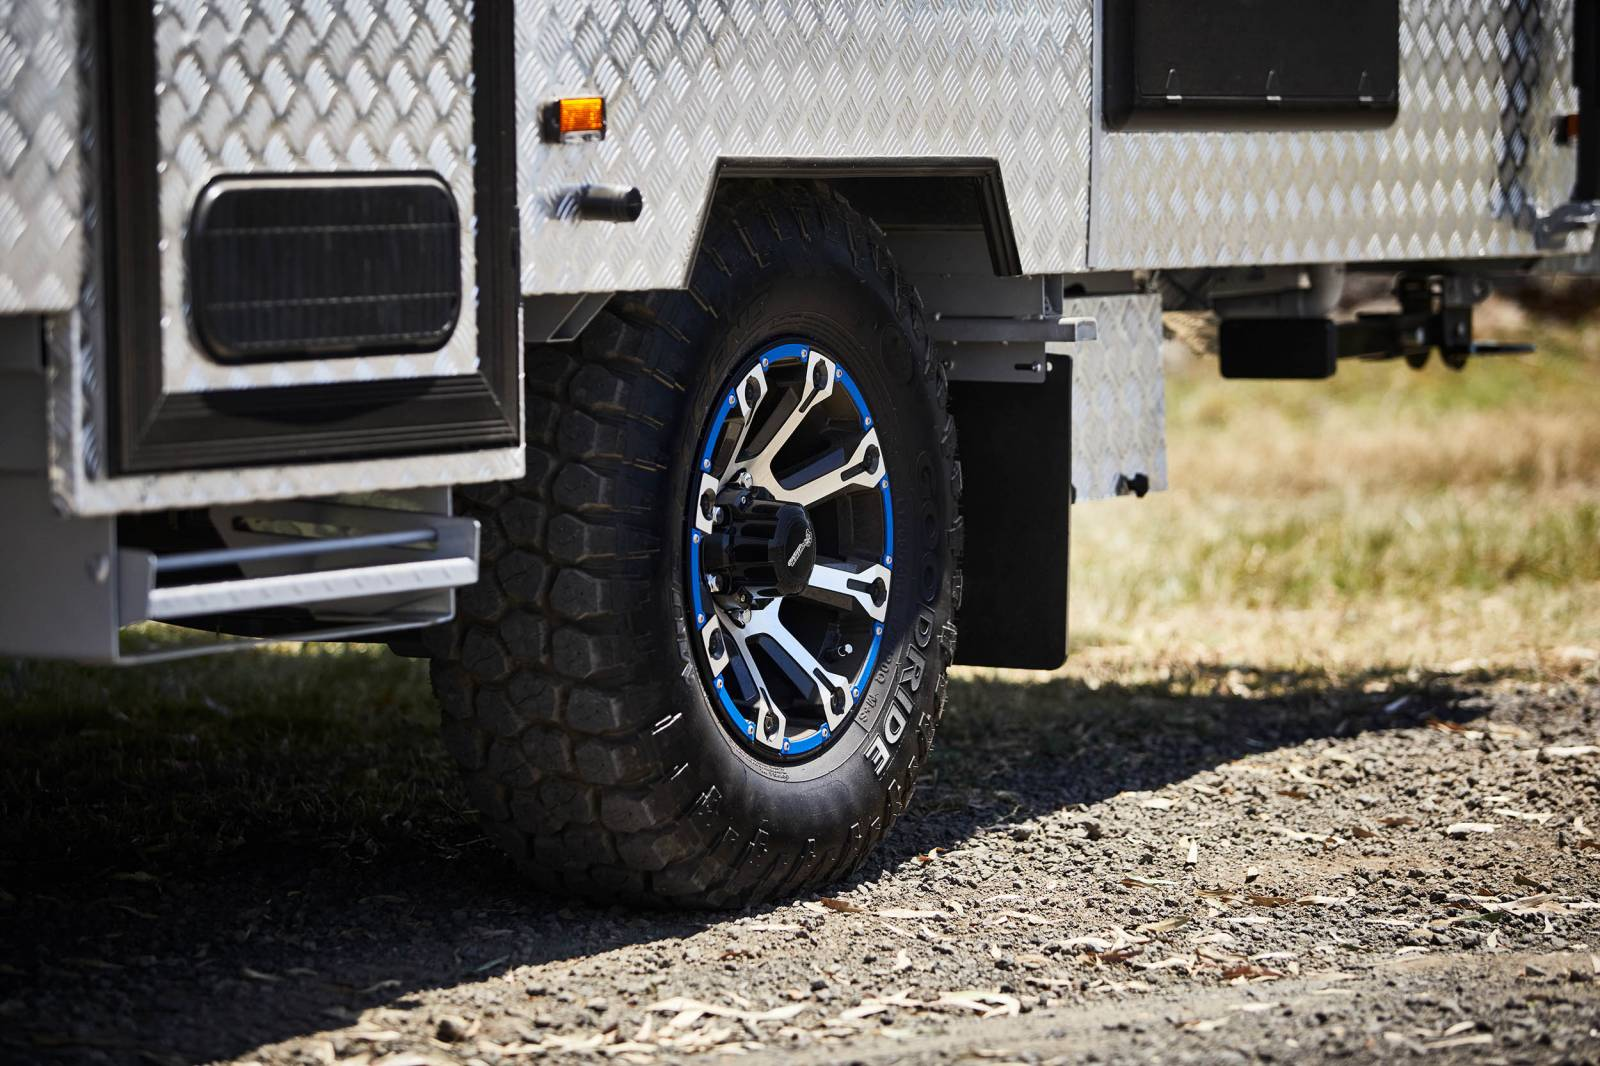 Should I get bigger tyres for my tow vehicle?